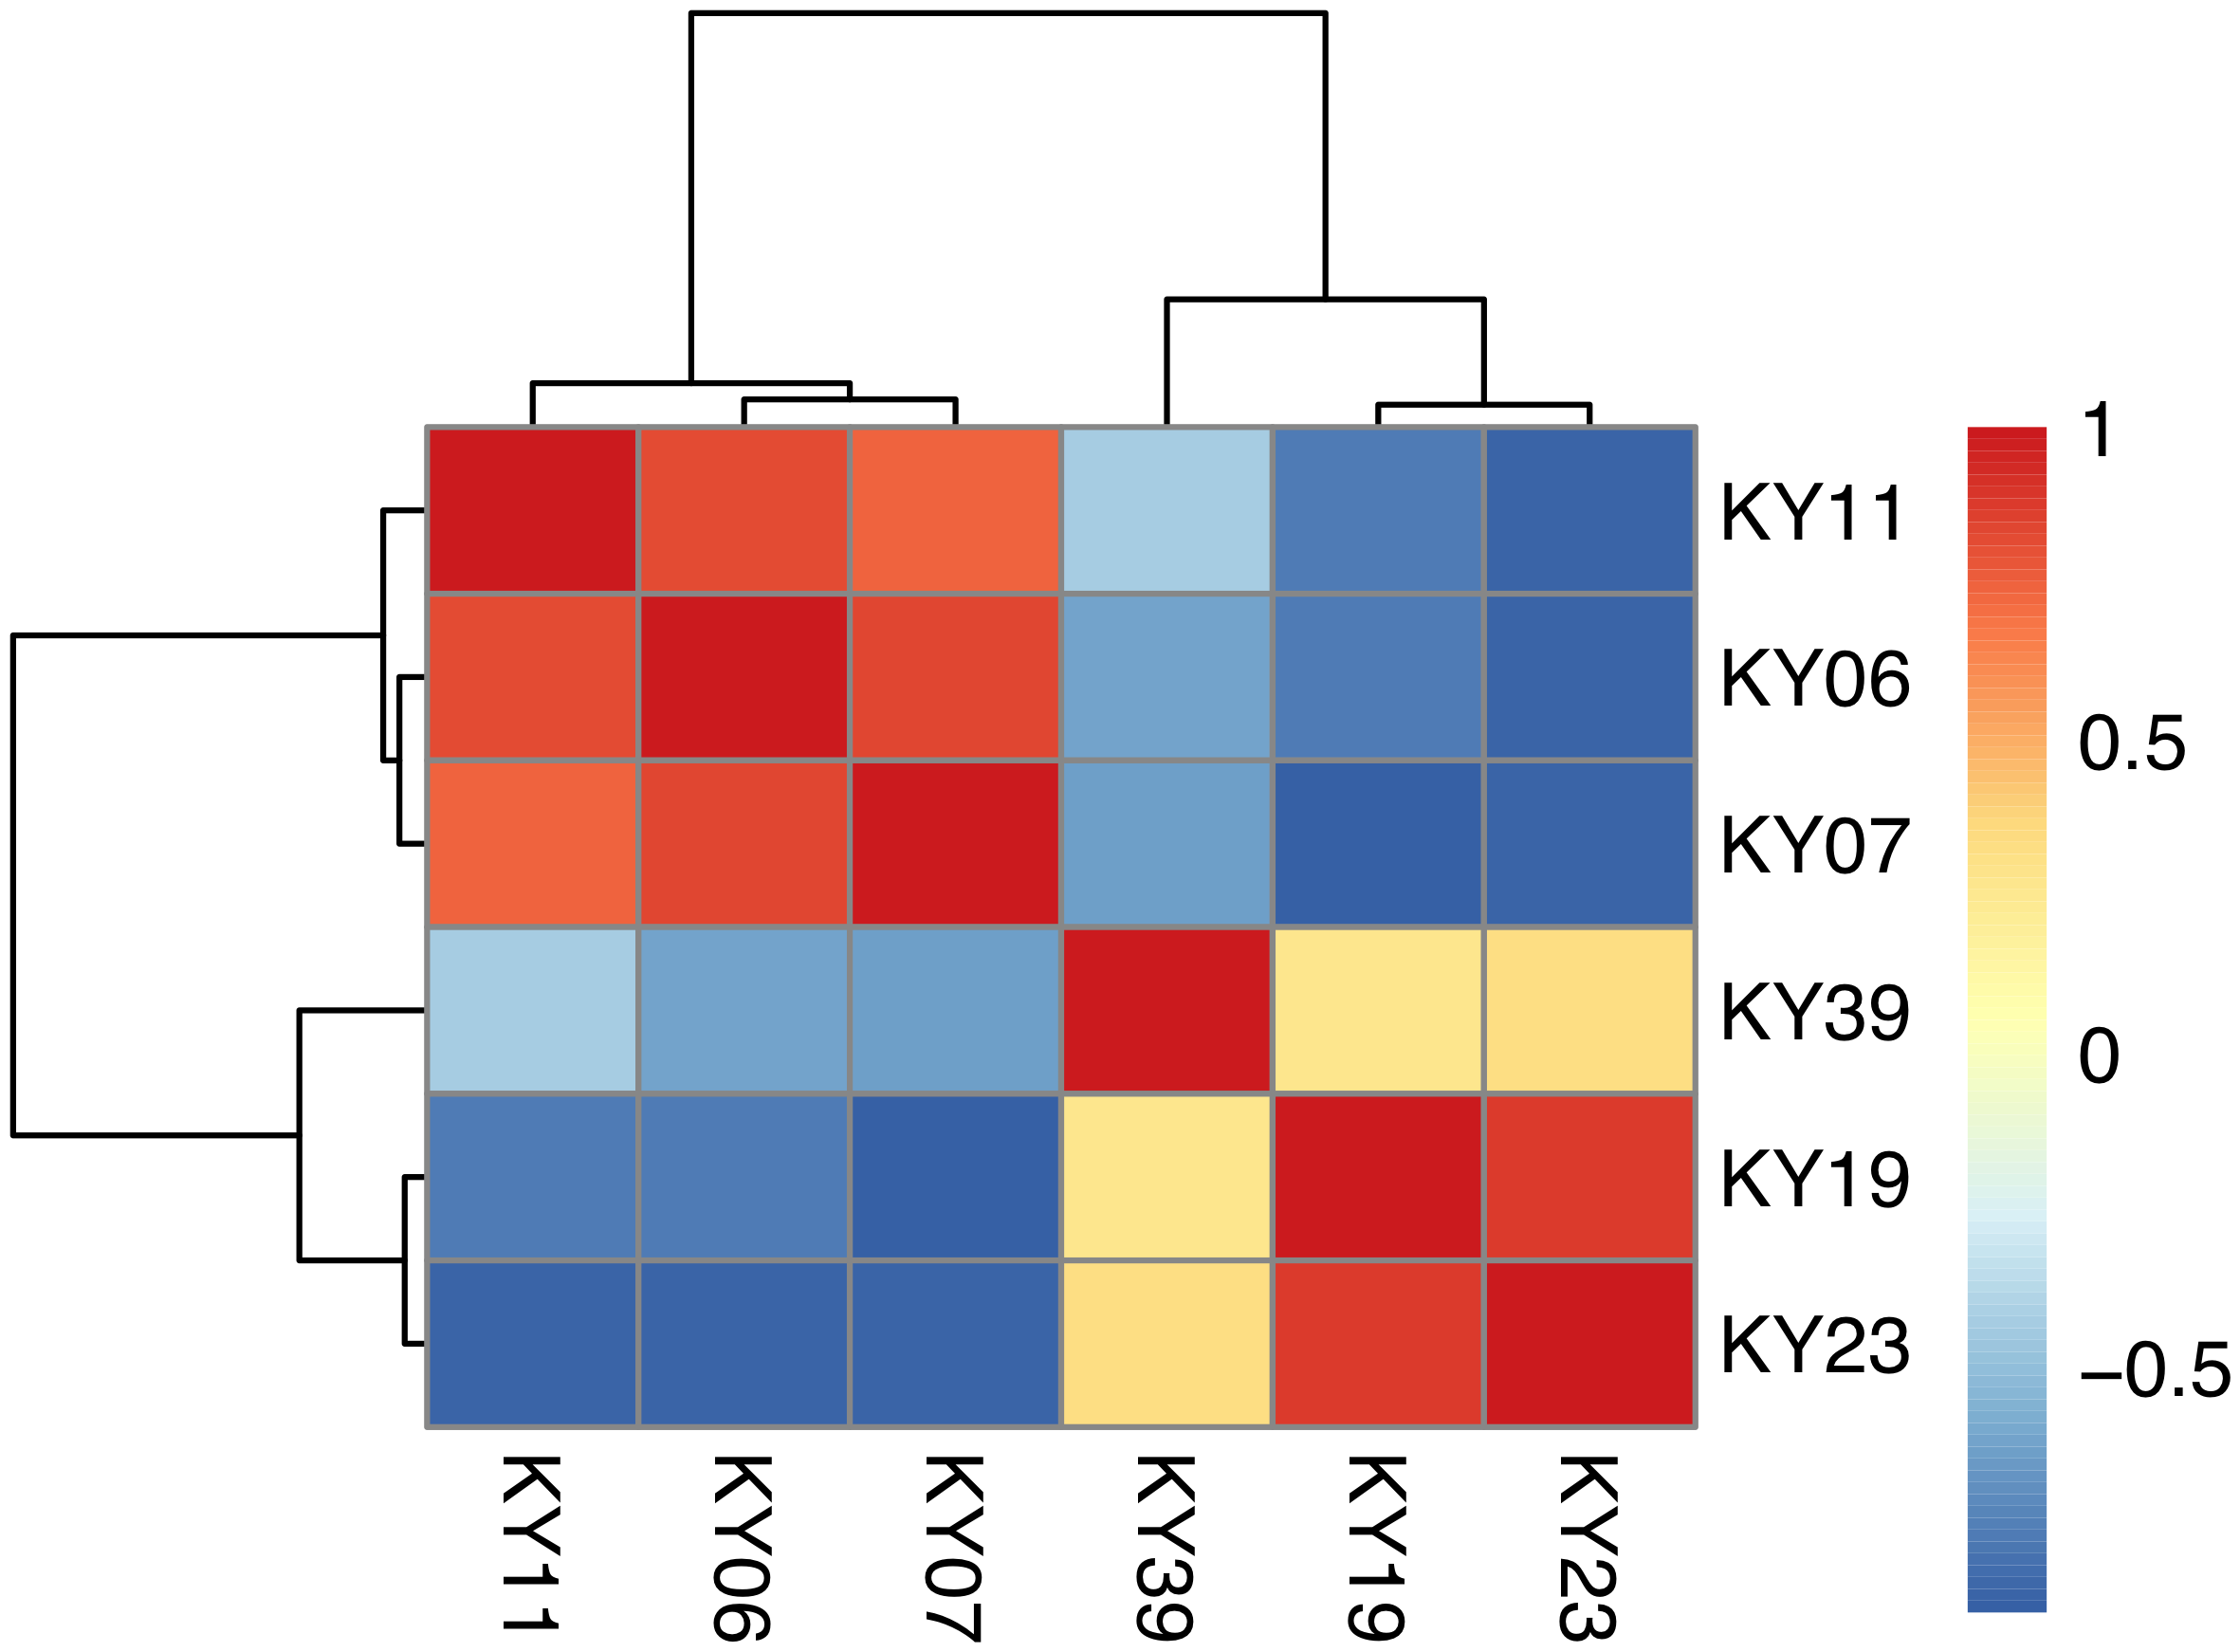 Hierarchical clustering of <i>Pd</i> gene expression on bats with WNS.